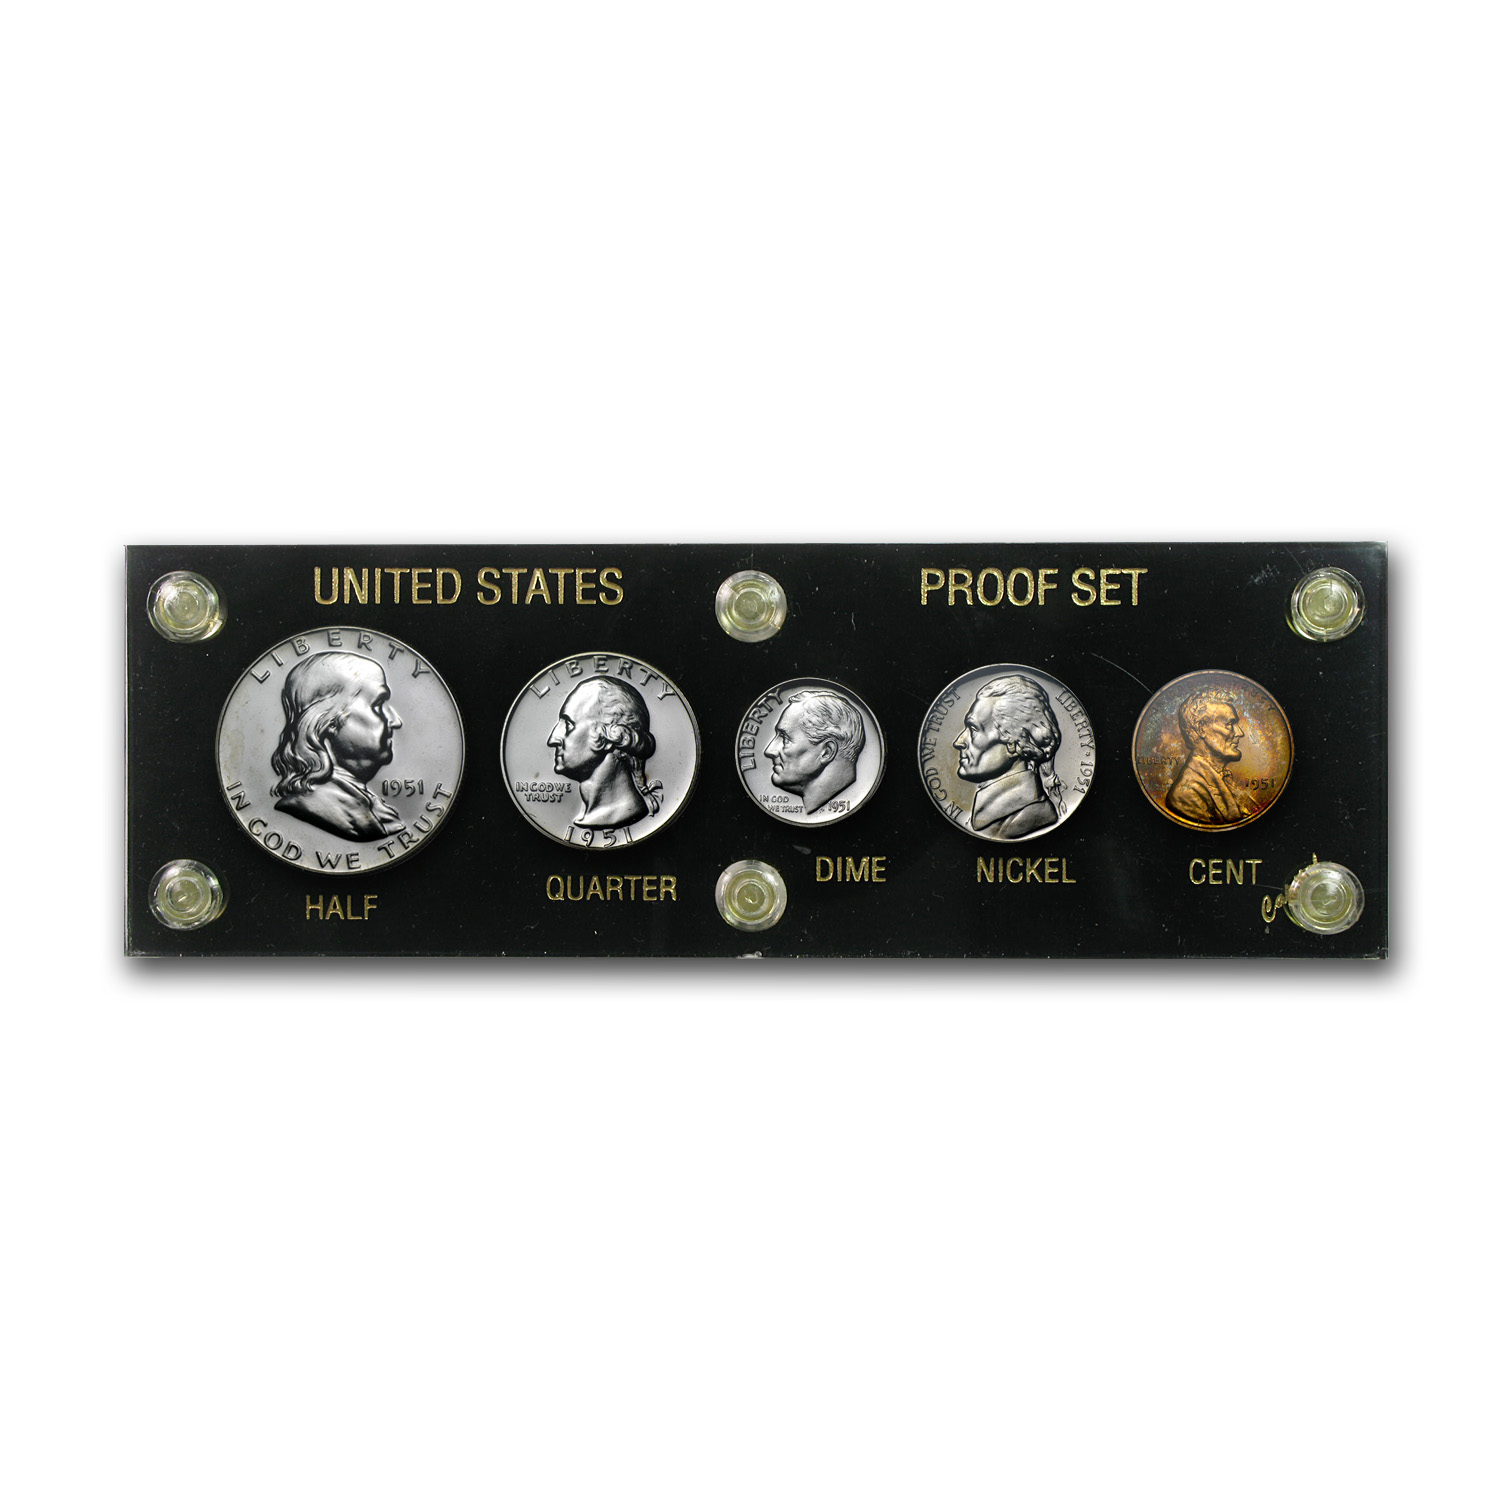 1951 U.S. Proof Set (In Hard Capital Plastic Holder)